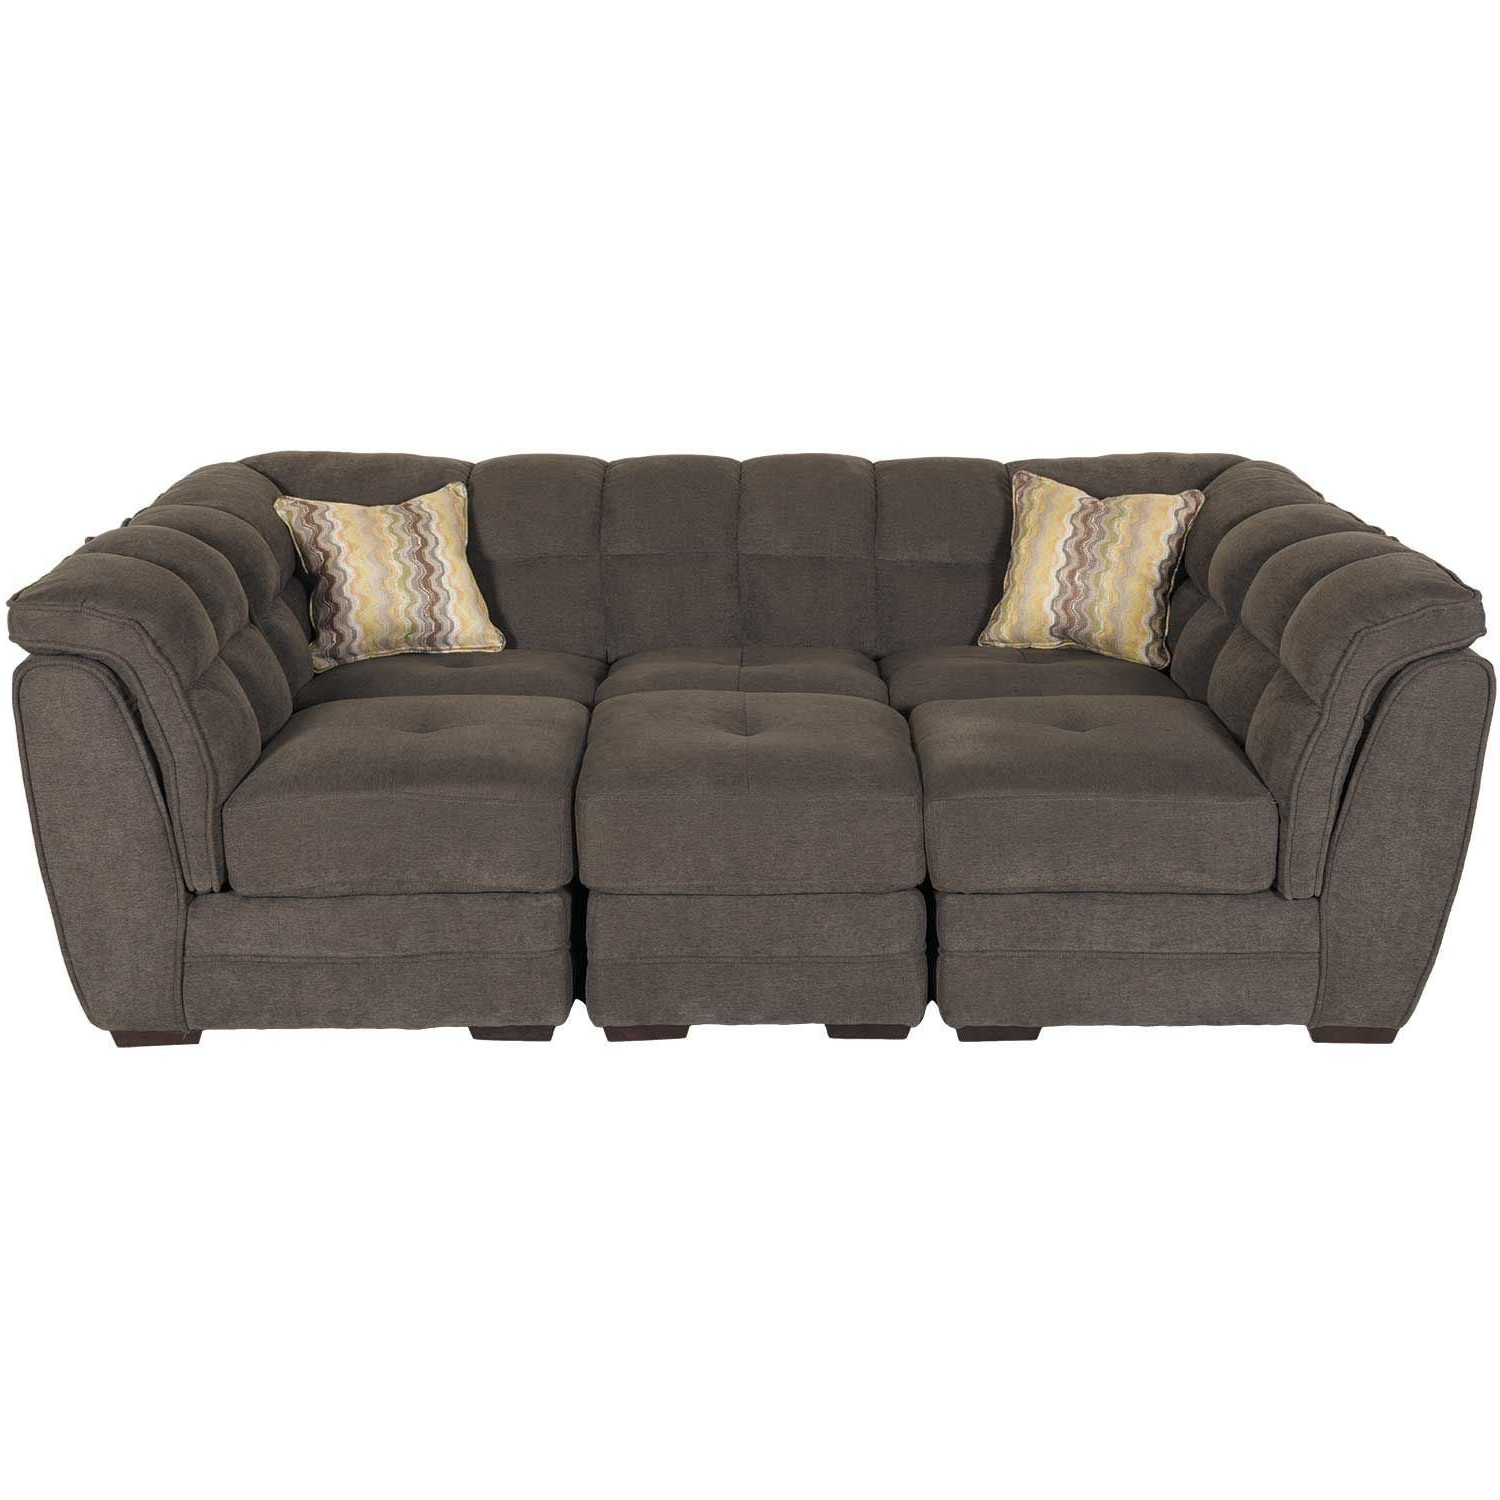 Trendy Taron 3 Piece Power Reclining Sectionals With Right Facing Console Loveseat In Big W Flip Out Sofa Bloom (View 2 of 20)